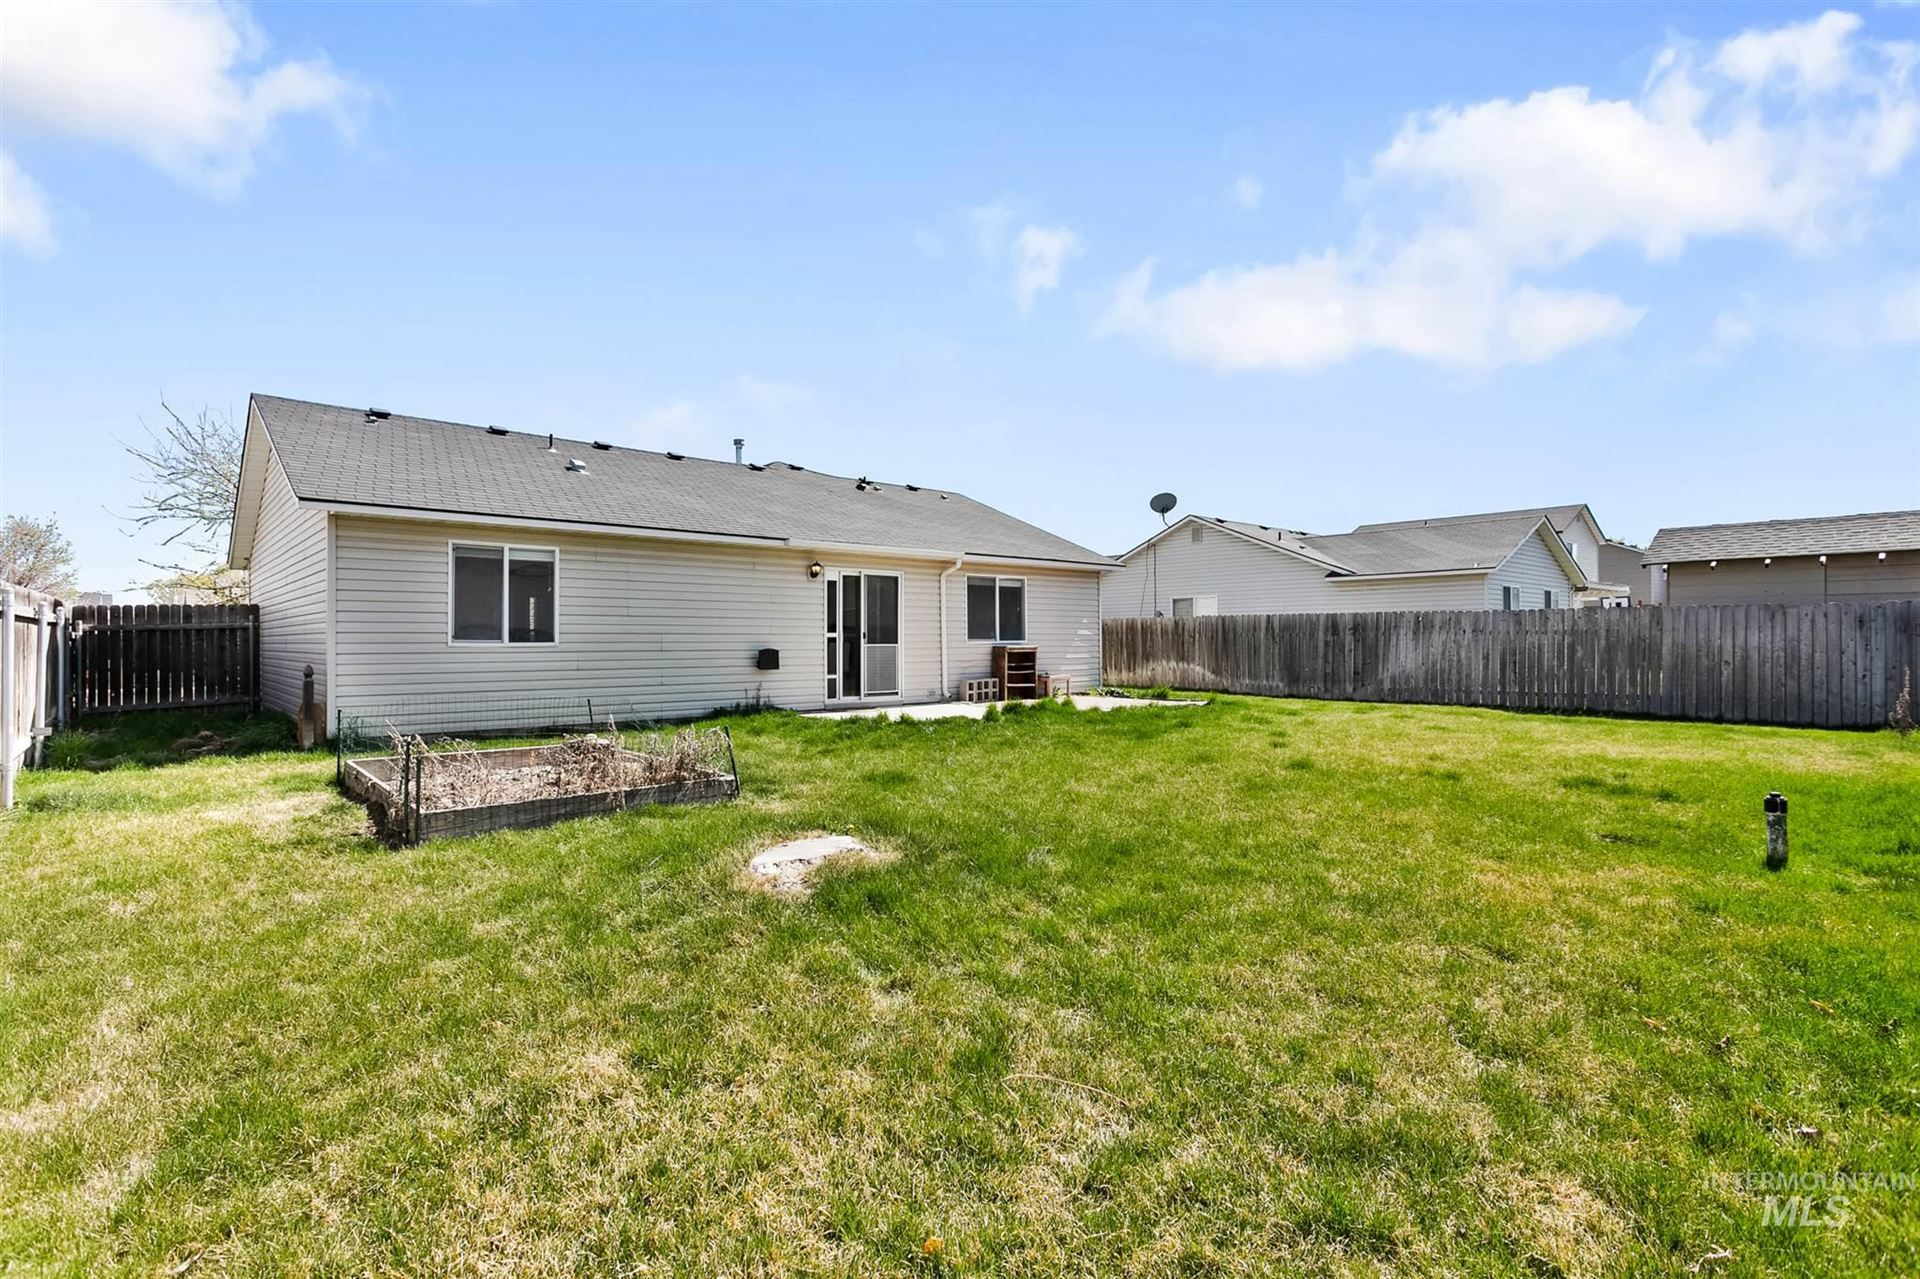 Photo of 19825 Amherst Ave, Caldwell, ID 83605 (MLS # 98798870)